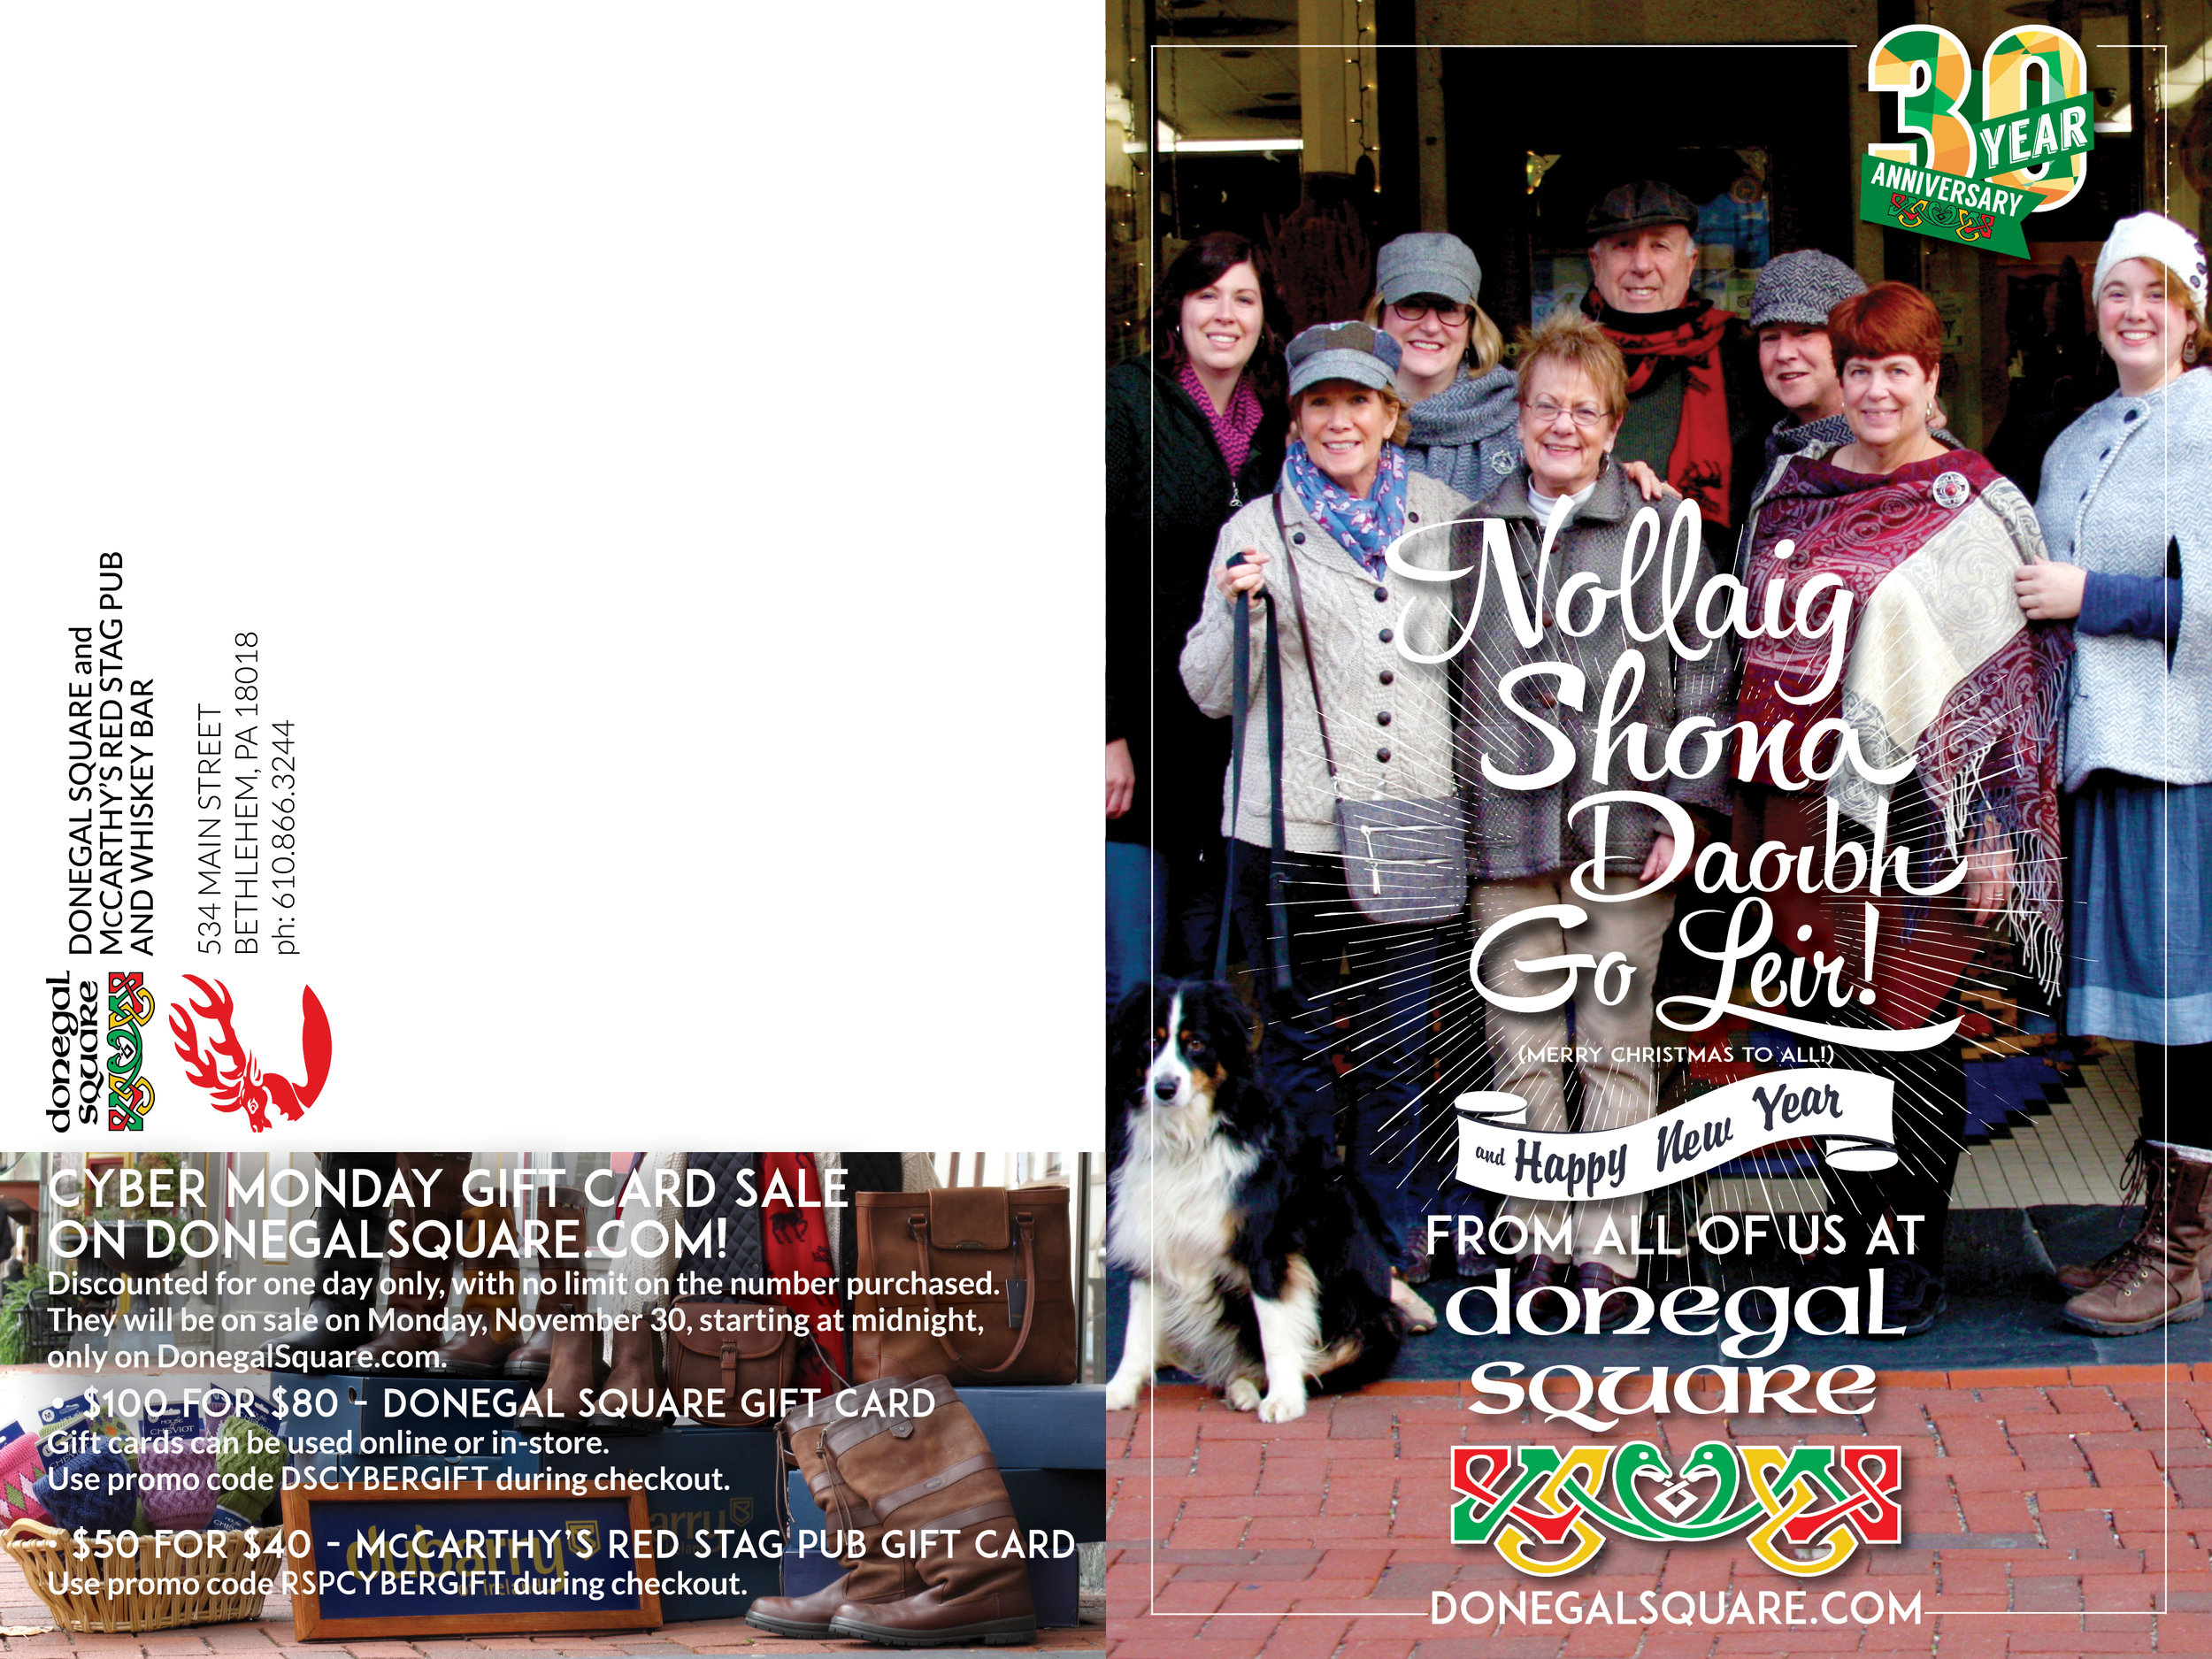 ANNUAL WINTER NEWS MAILER • 12 x 9 FOLDED  CLIENT: DONEGAL SQUARE + MCCARTHY'S RED STAG PUB PLACEMENT: Mailed out to 5,000+ customer list. WORK: Adobe Illustrator + InDesign